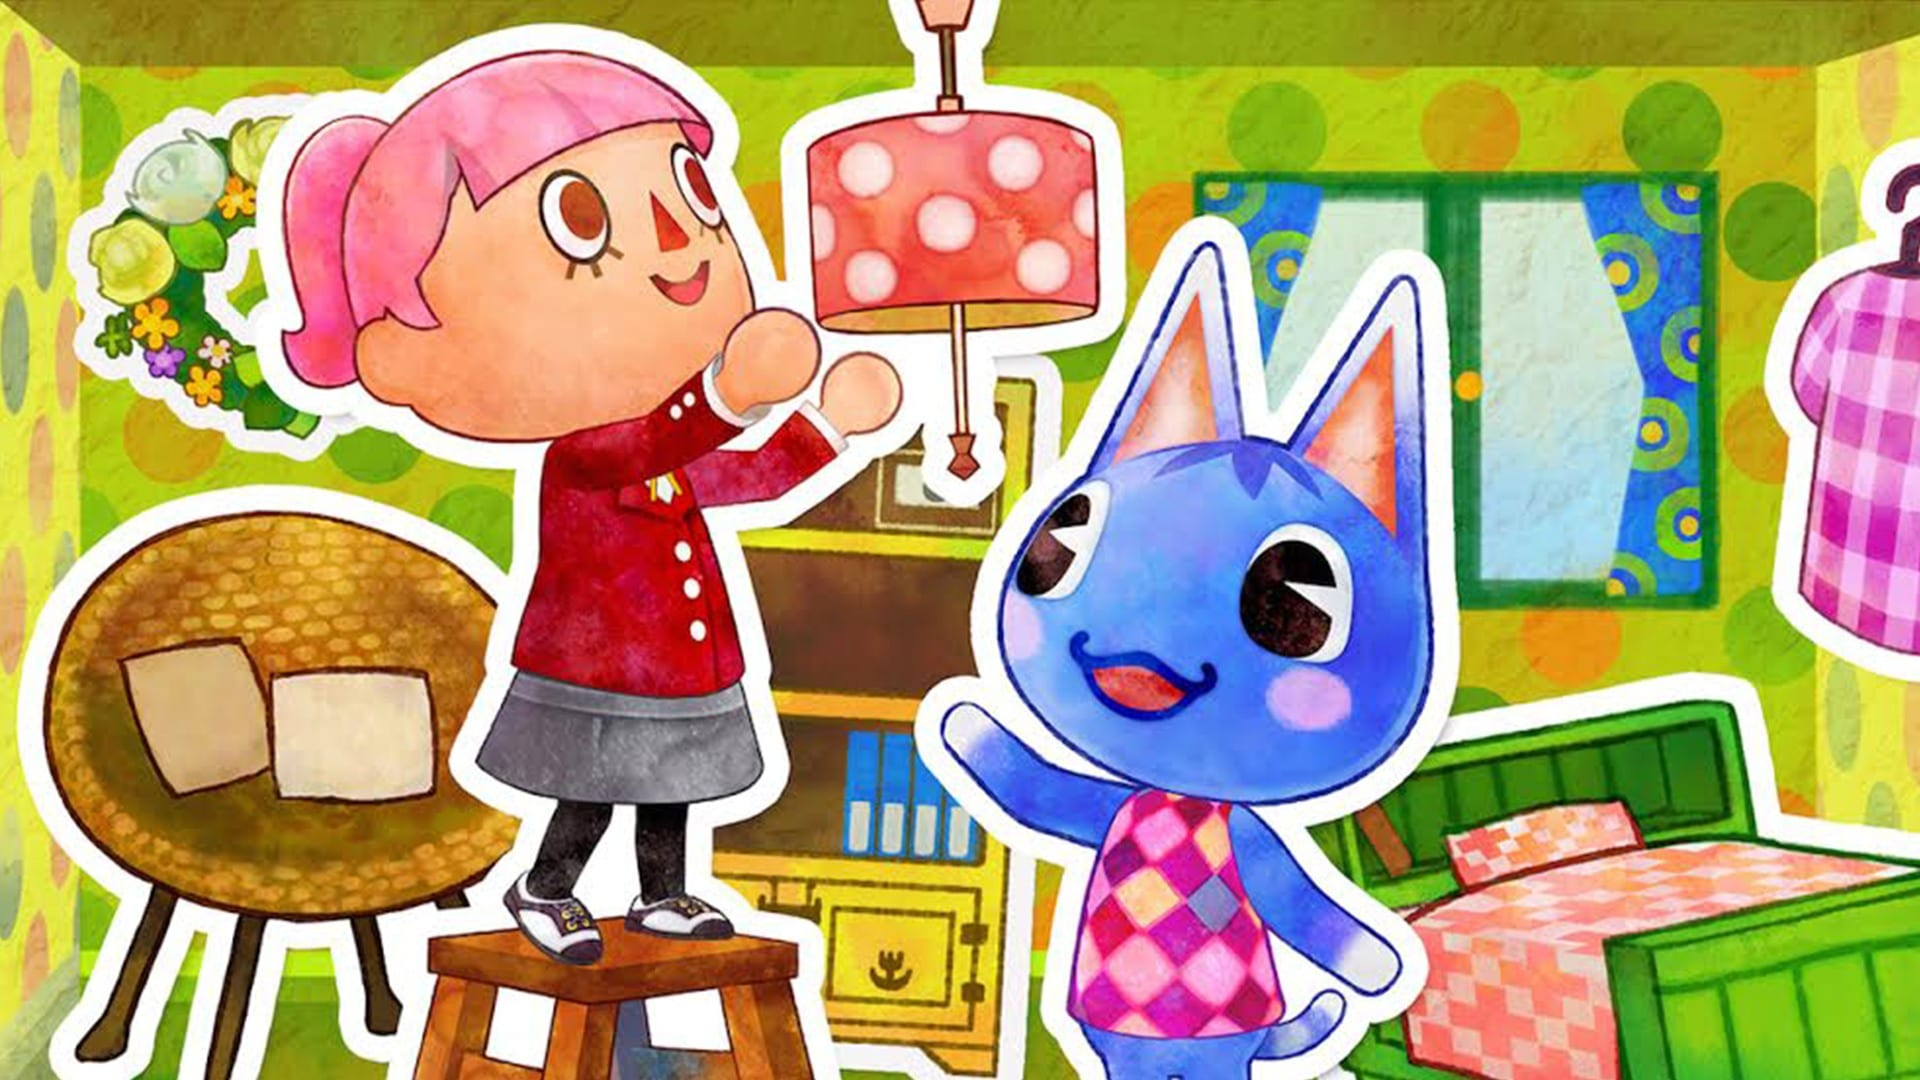 Hd Animal Crossing Wallpapers You Need To Make Your Desktop